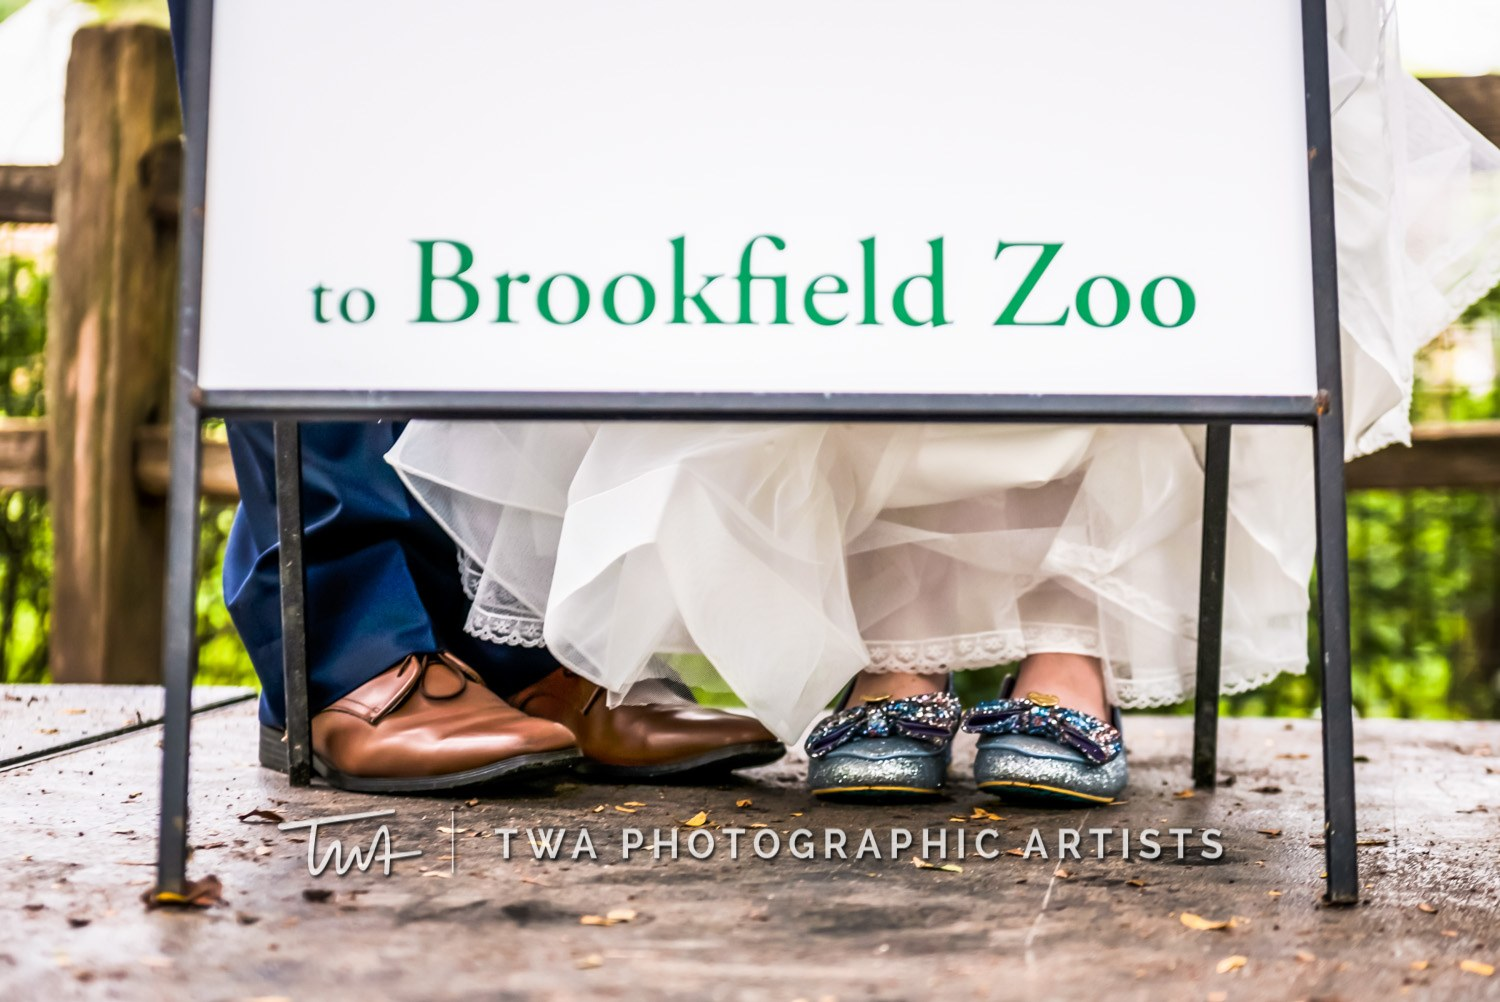 Chicago-Wedding-Photographer-TWA-Photographic-Artists-Brookfield-Zoo_Chiluski_Roach_ZZ_TL-0262